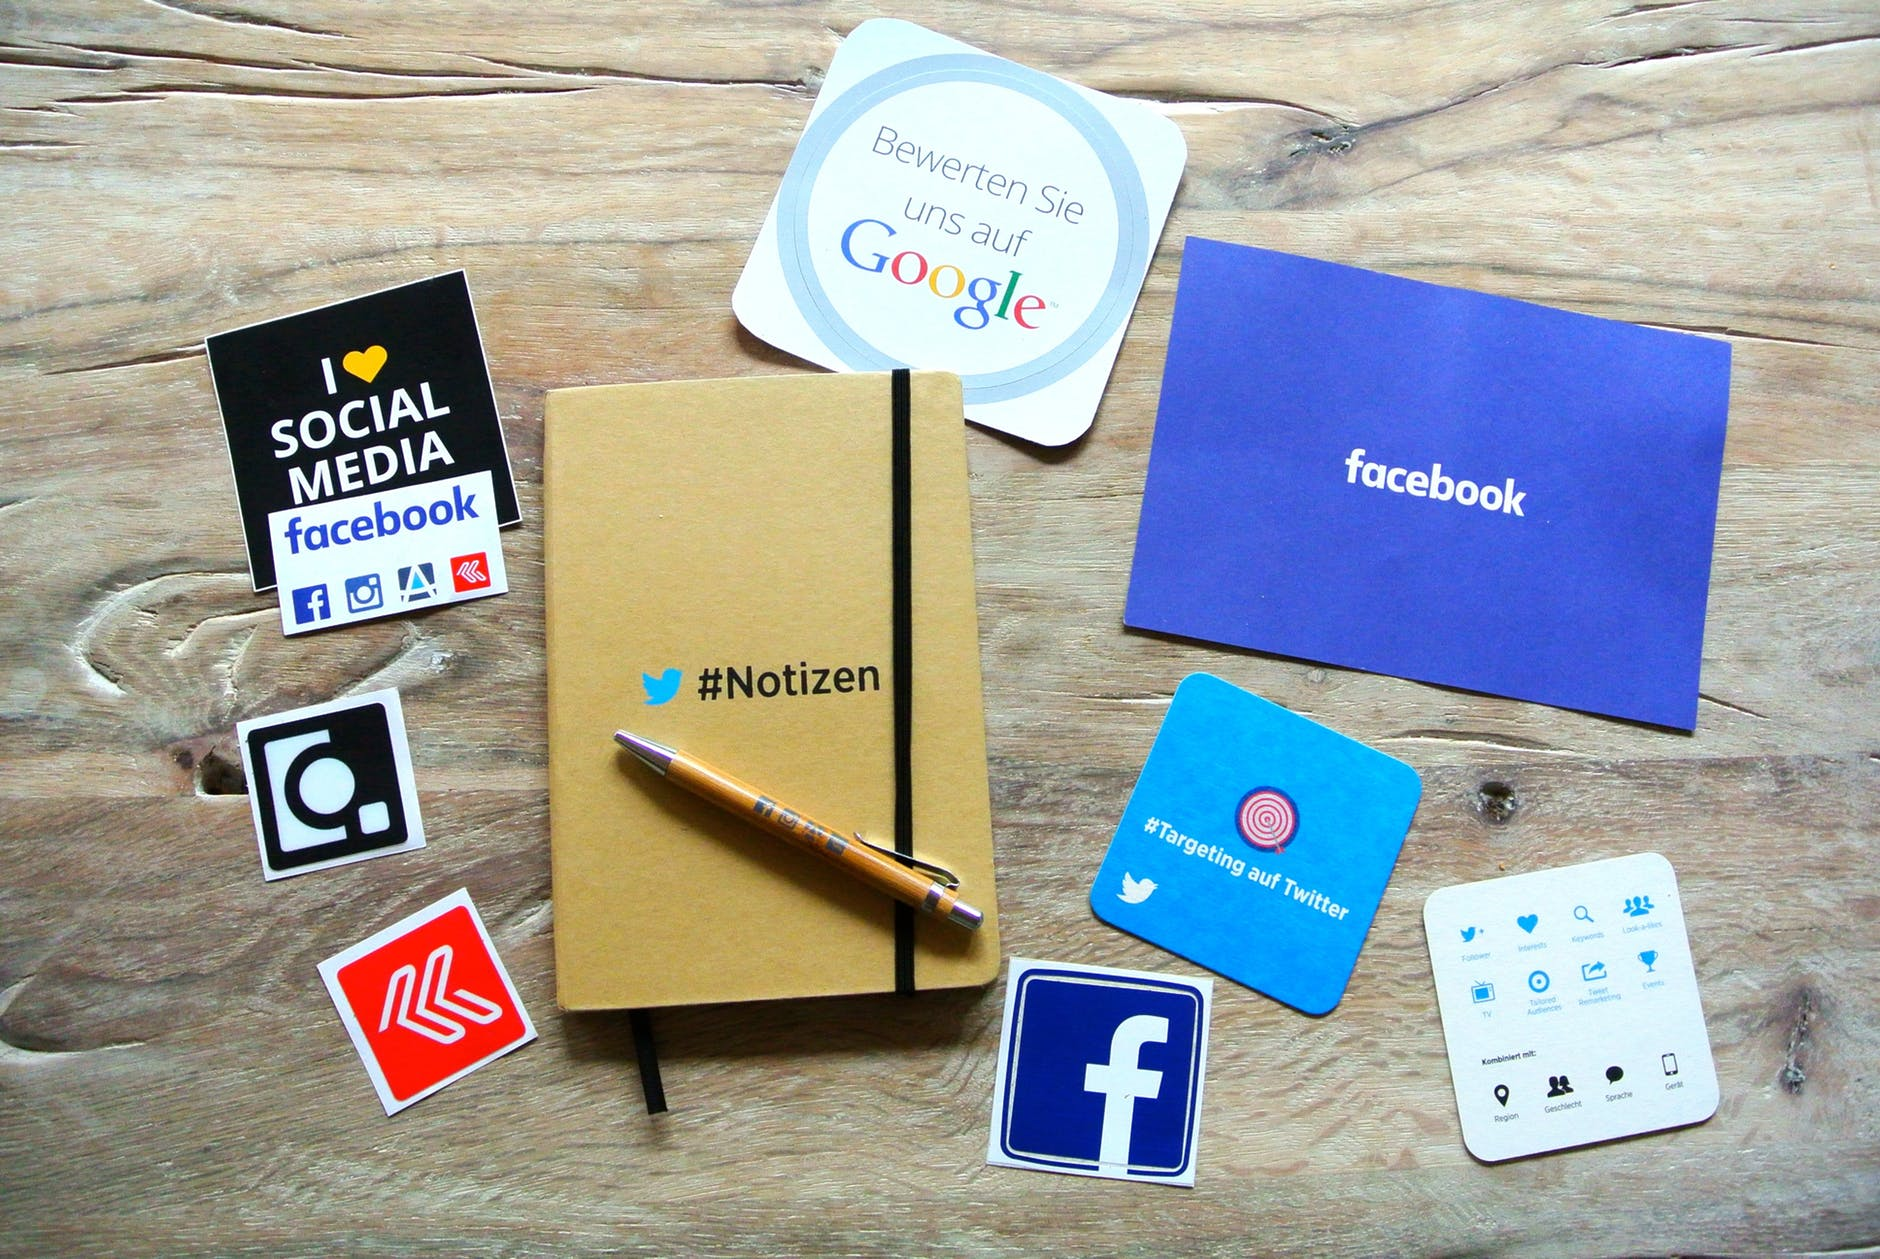 facebook instagram network notebook USA Social media - The Top 3 Ways of Using Digital Marketing to Promote Your Preschool